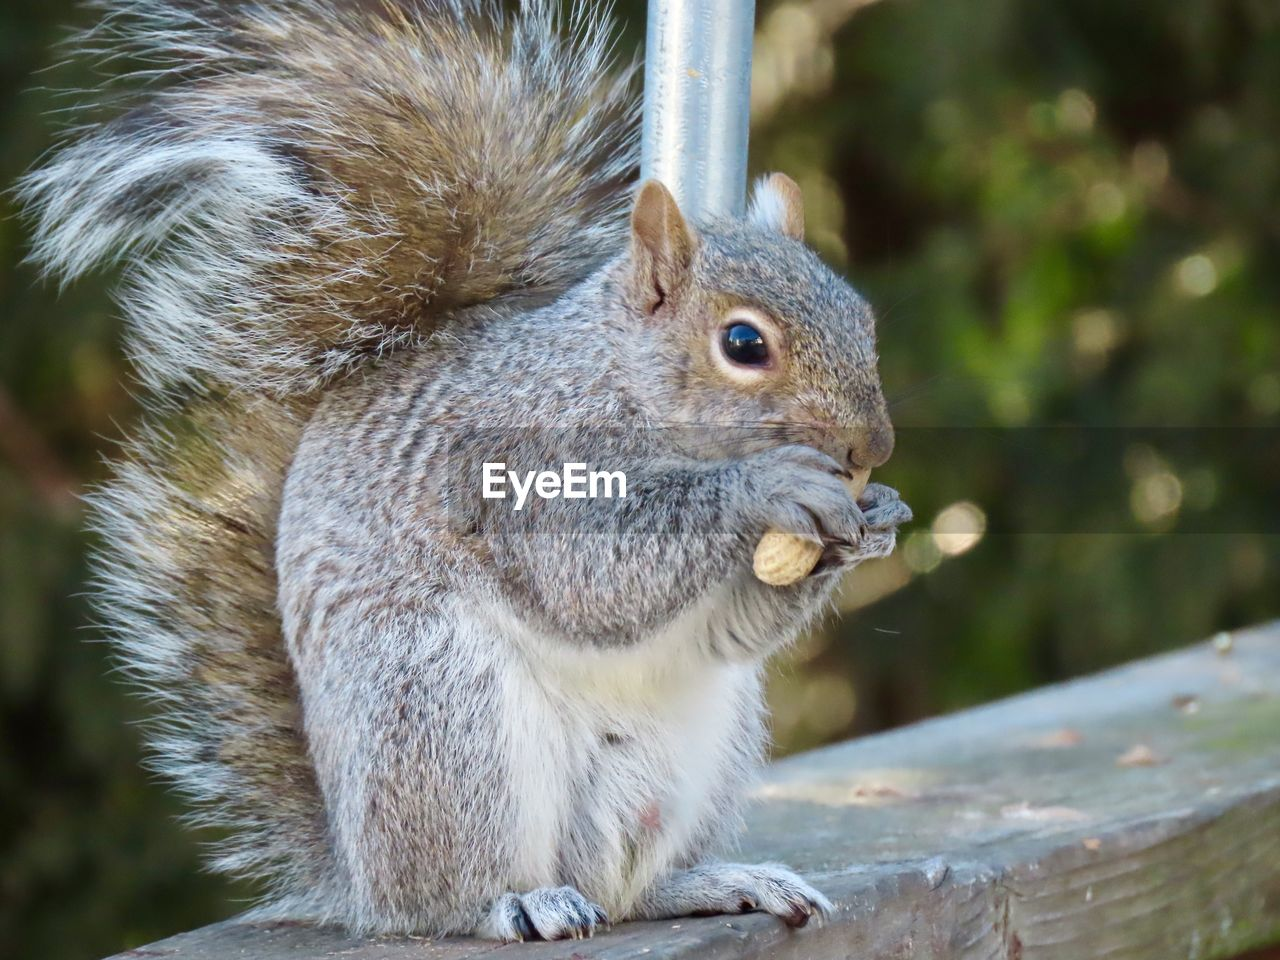 animal themes, animal, one animal, animal wildlife, animals in the wild, mammal, rodent, squirrel, close-up, vertebrate, focus on foreground, day, no people, nature, eating, outdoors, animal body part, zoology, looking, food, animal head, whisker, herbivorous